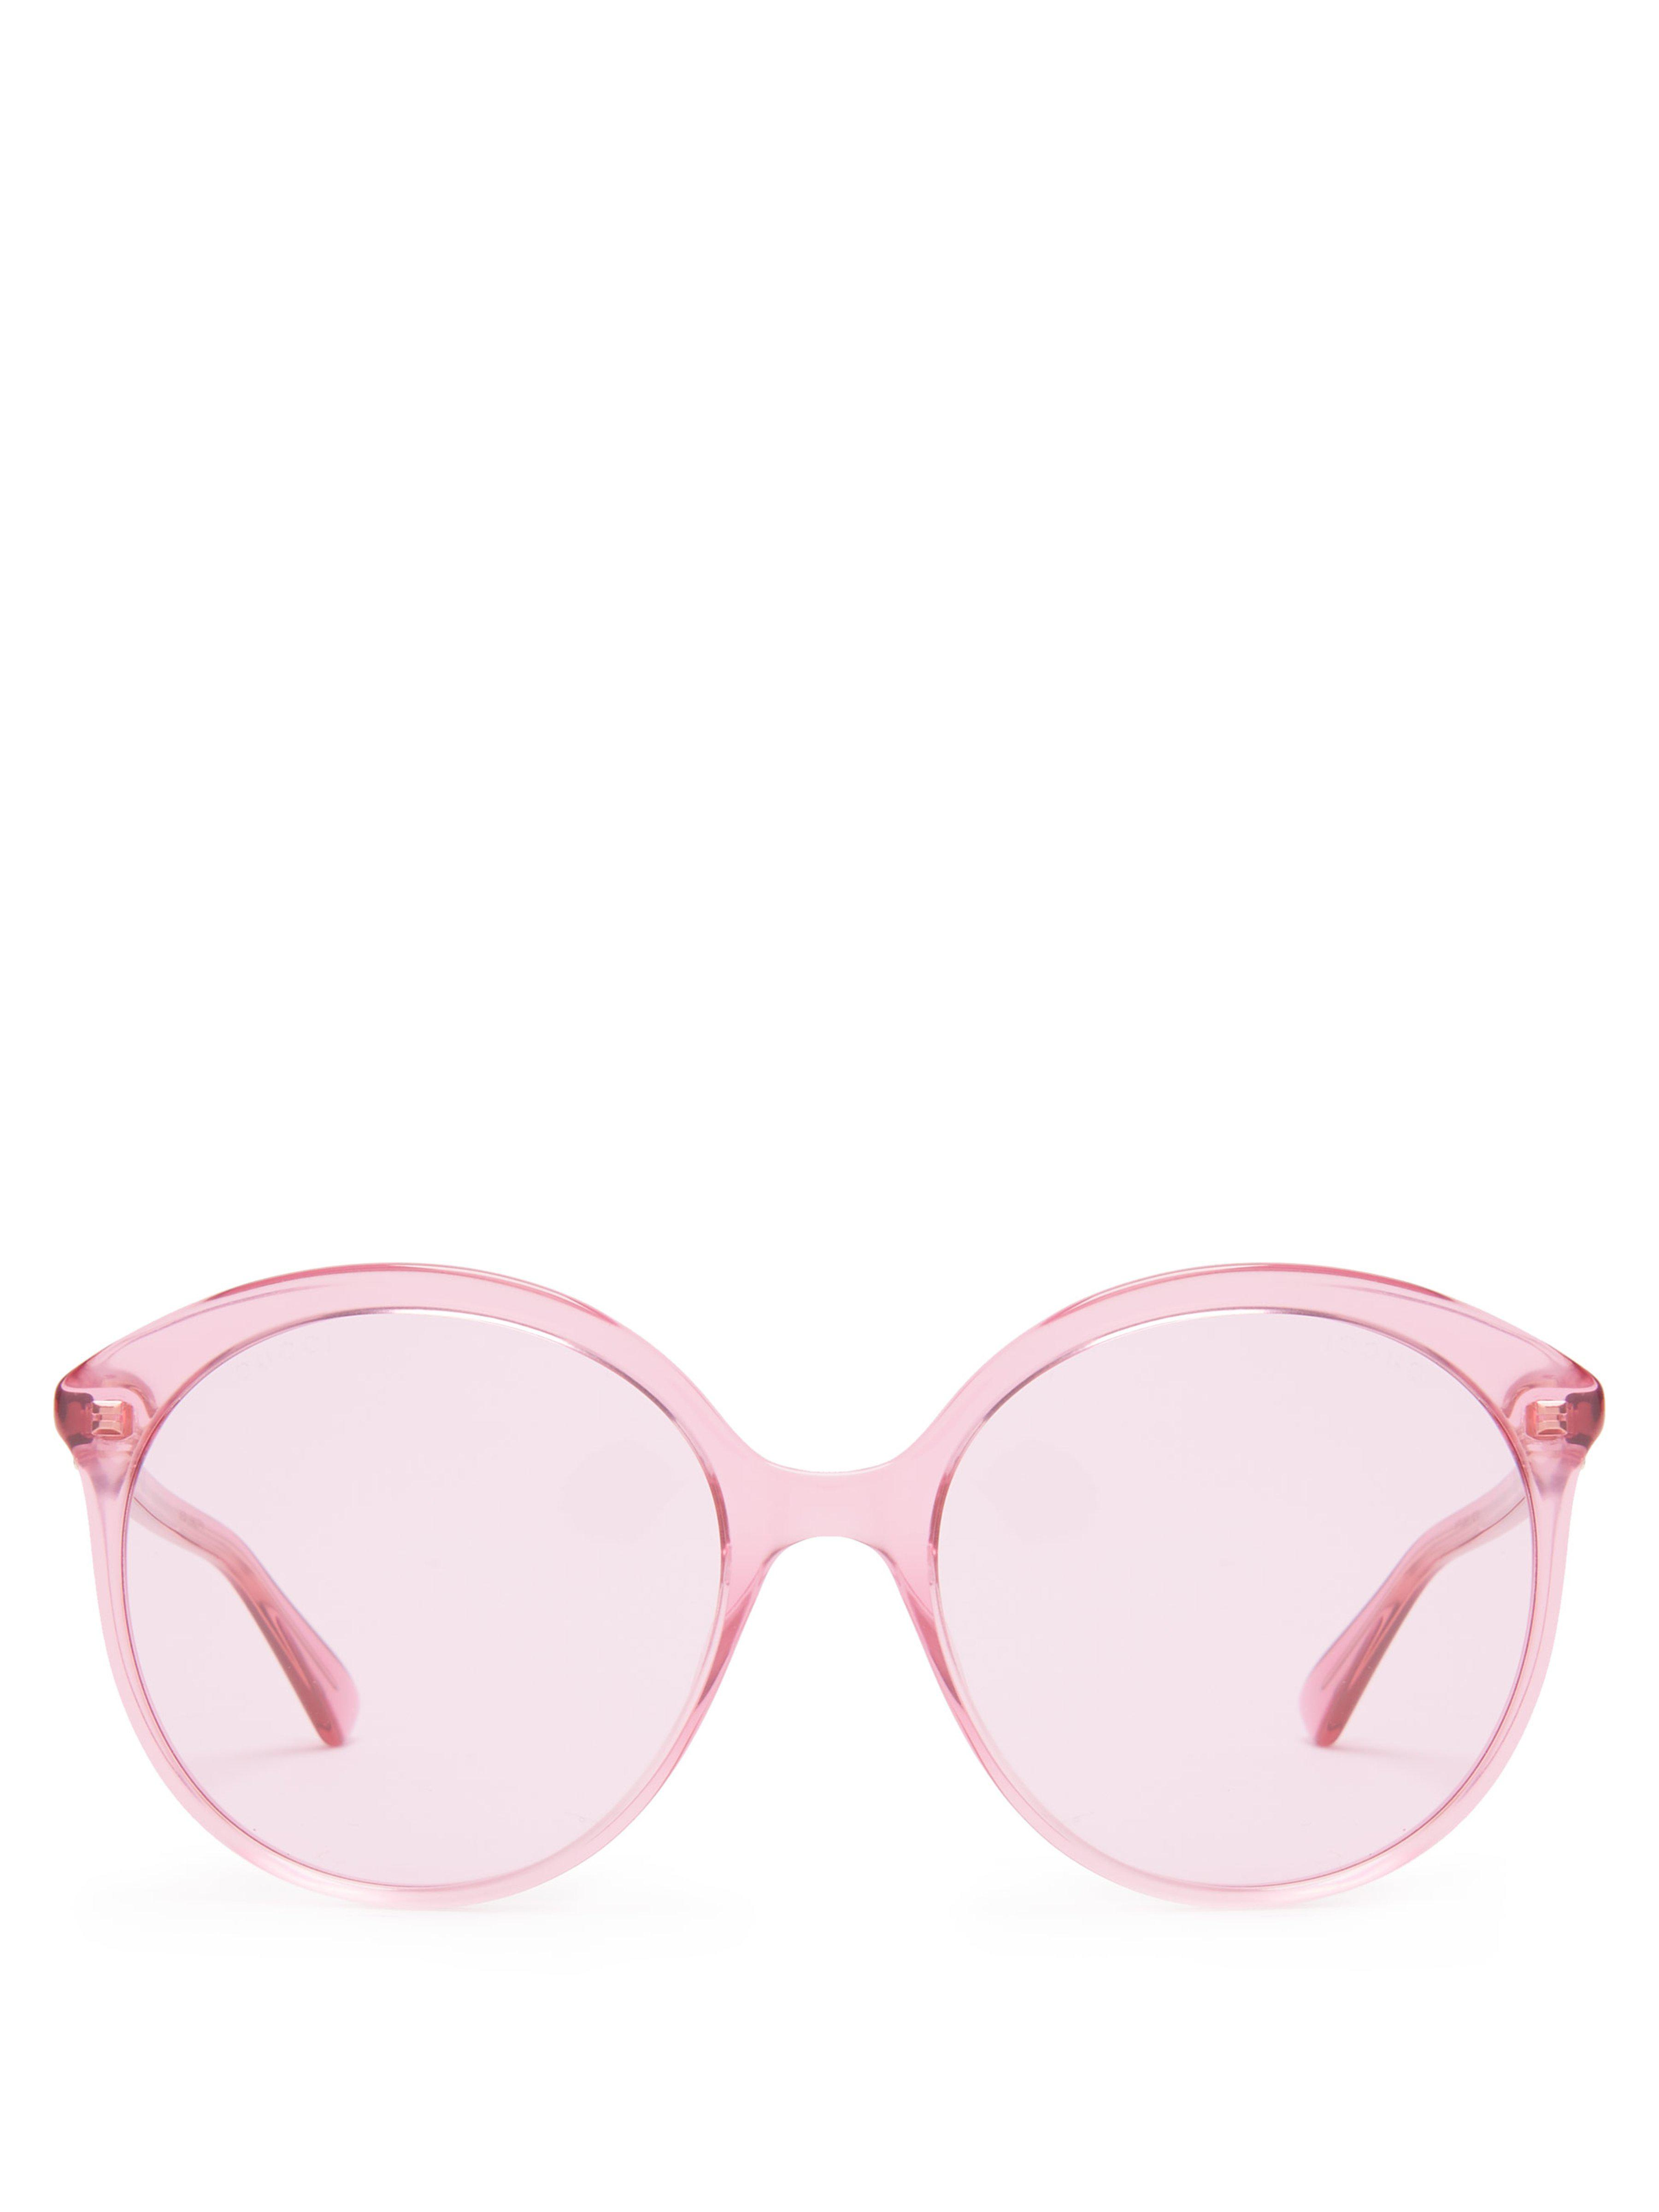 2419723b61 Gucci Round Cat Eye Frame Acetate Sunglasses in Pink - Lyst